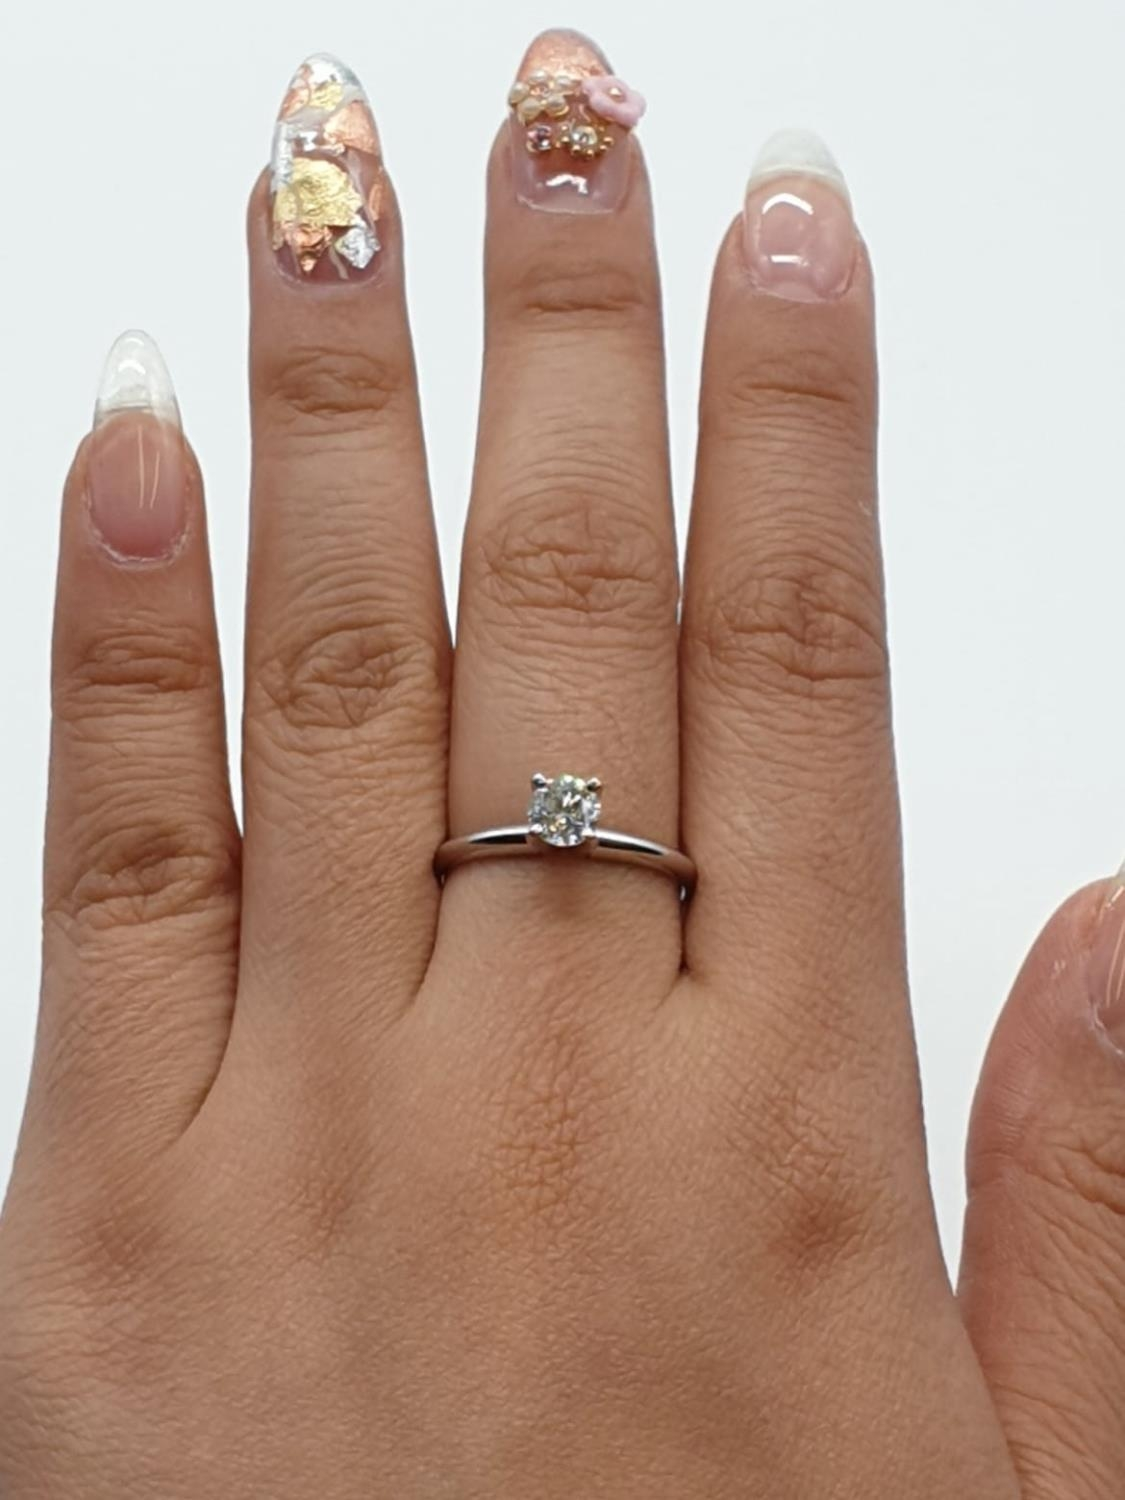 14ct white gold with 0.56ct diamond solitaire ring (round brilliant cut, colour H, clarity SI1 - Image 14 of 18